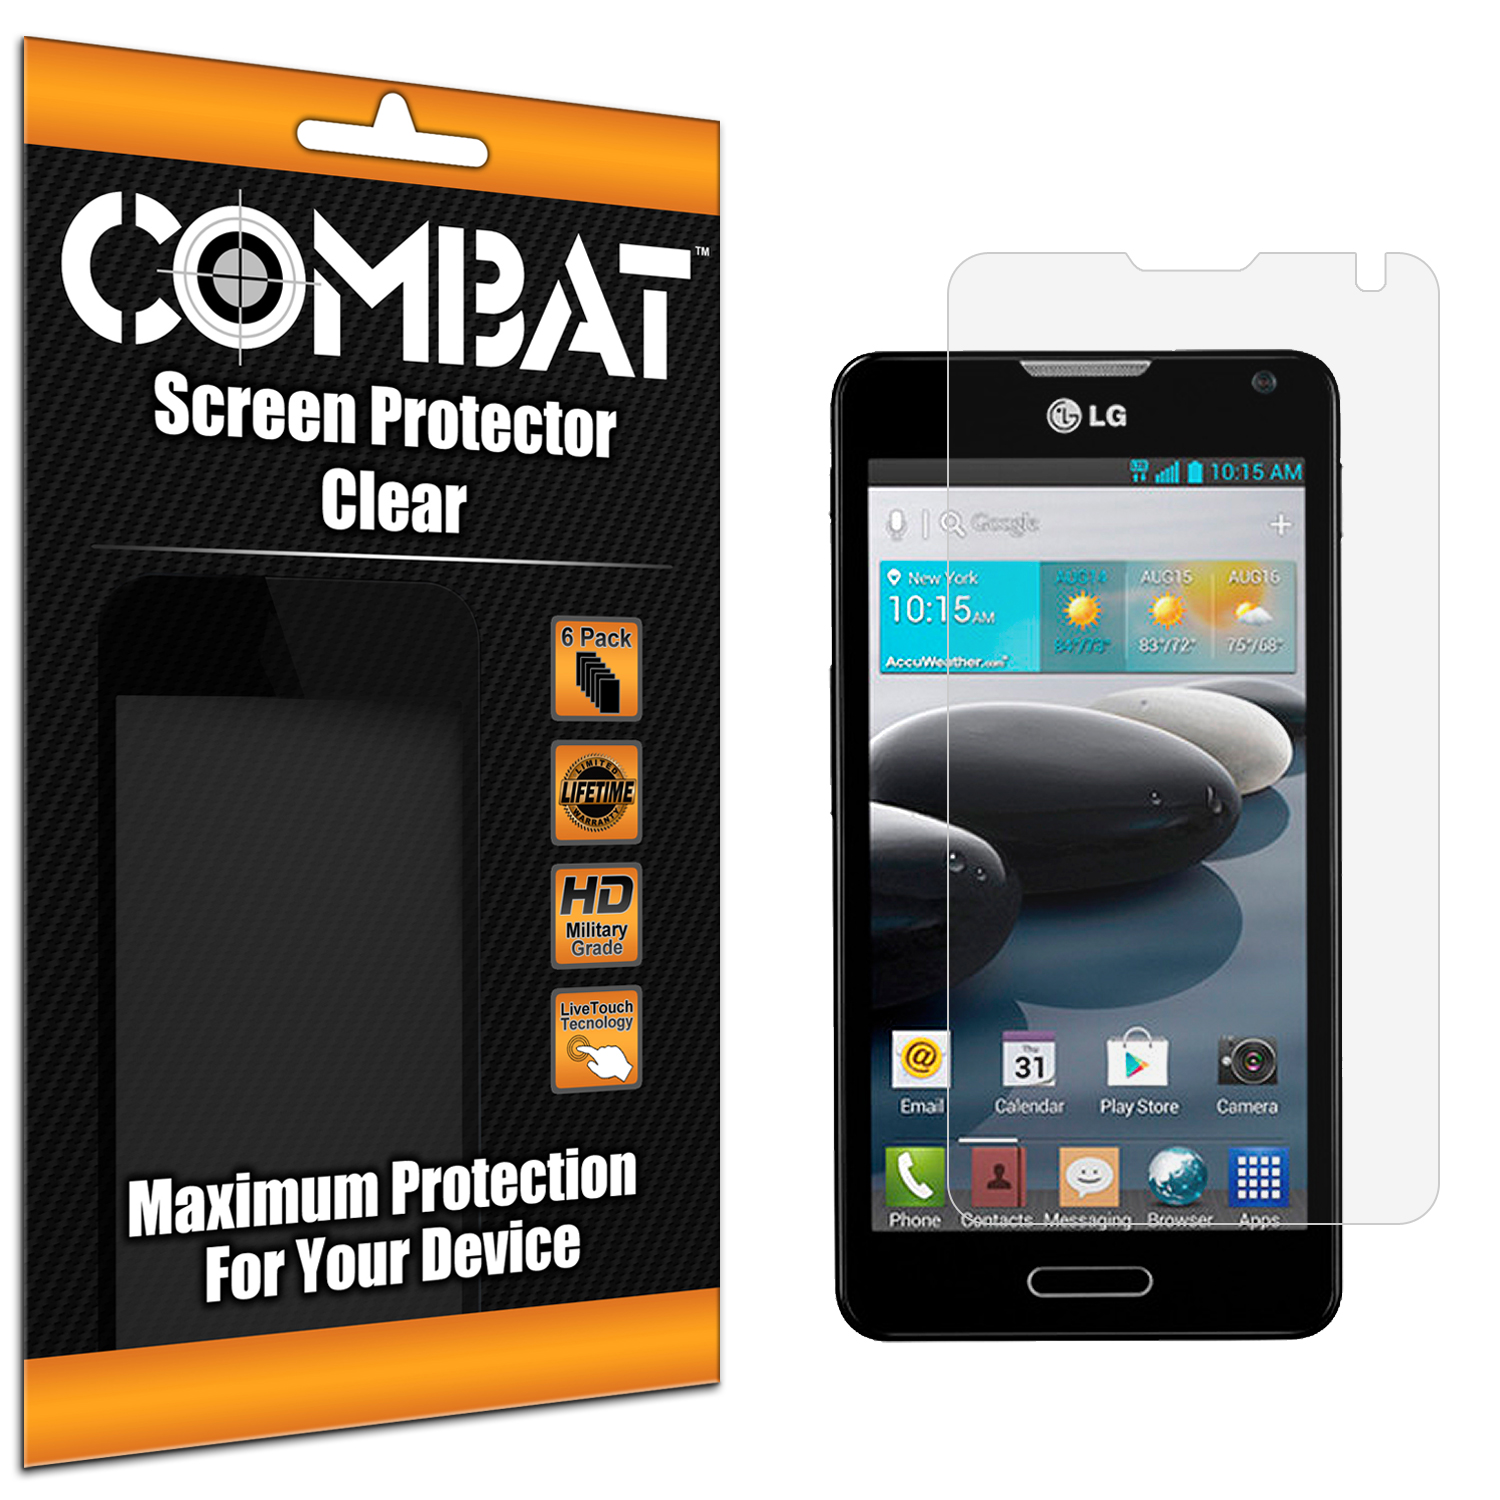 LG Optimus F6 D500 Combat 6 Pack HD Clear Screen Protector